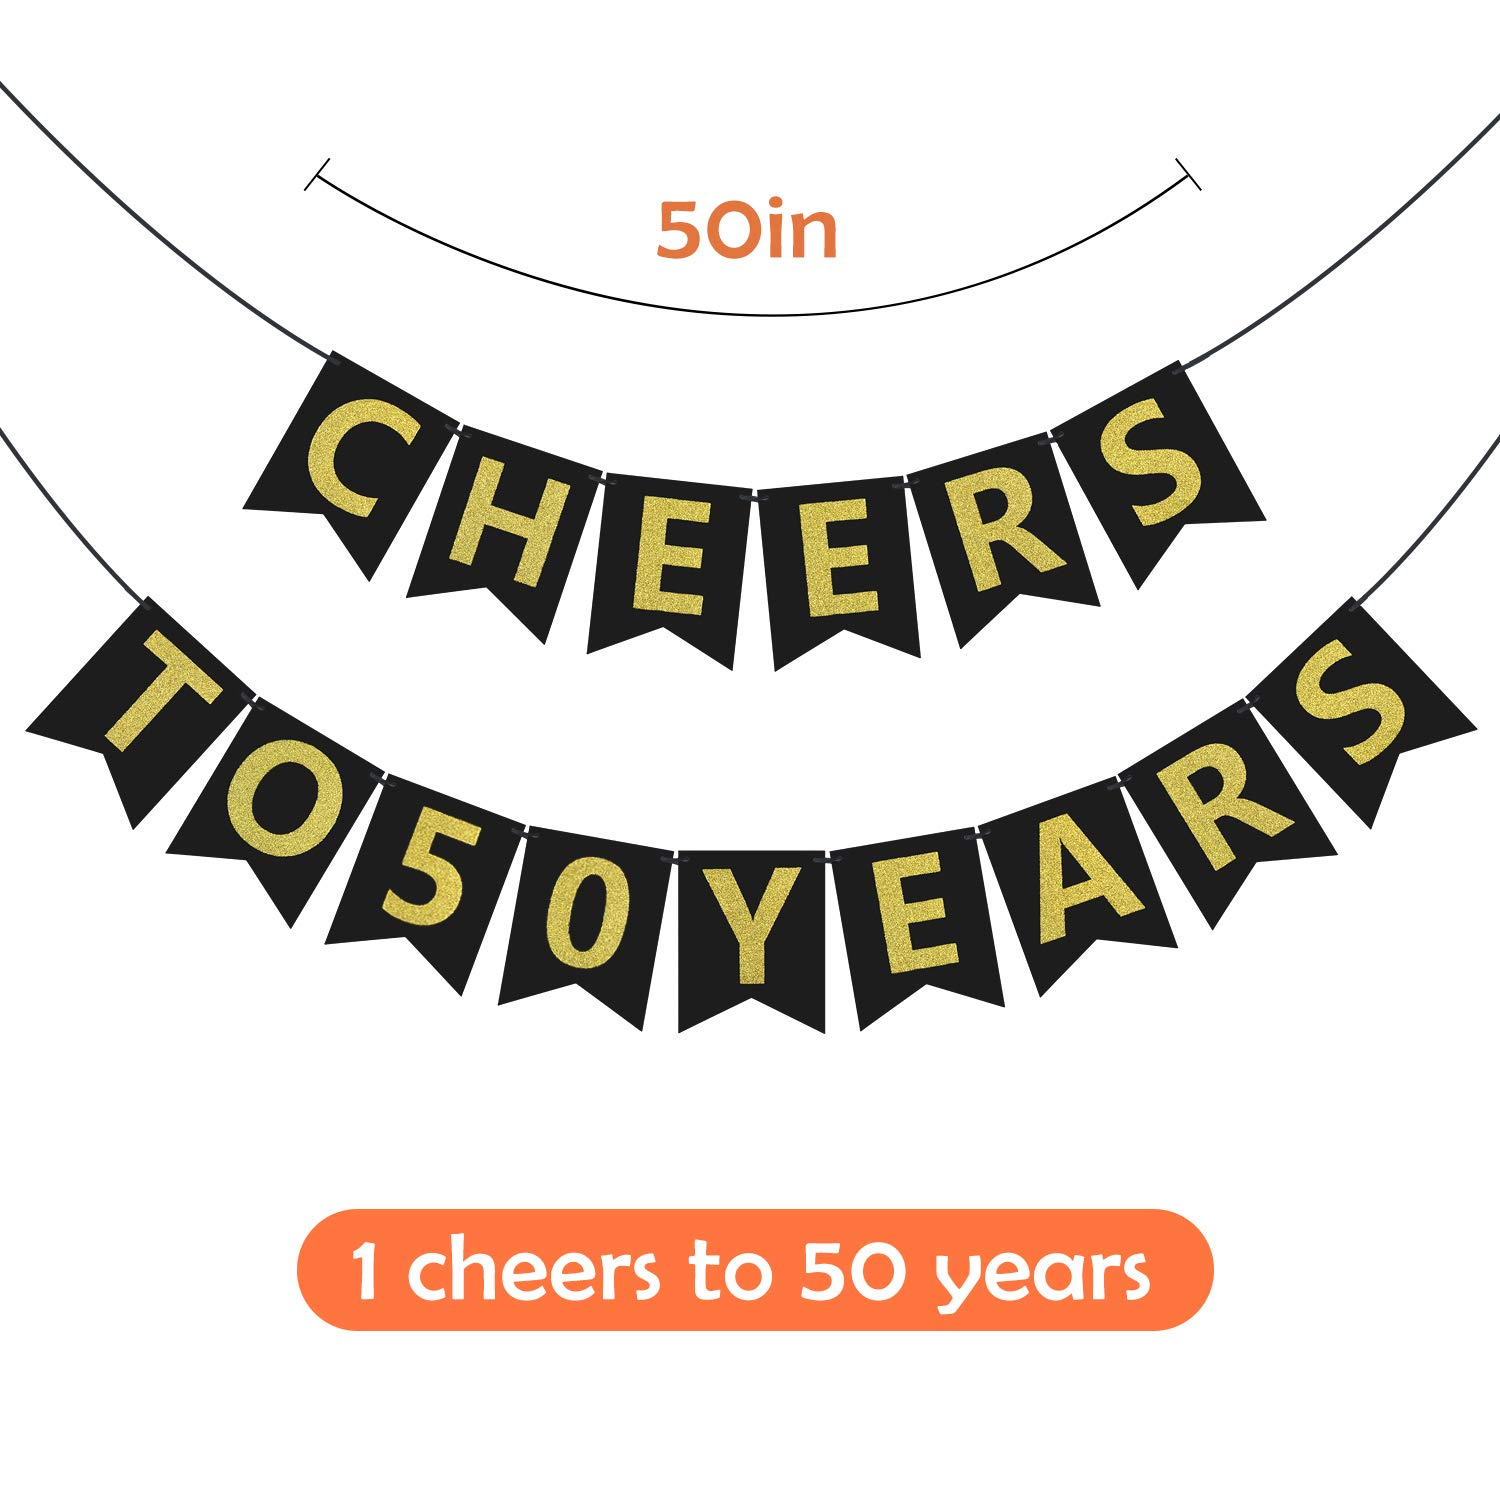 ZukoCert 50th Birthday Decorations Kit Gold Glittery Cheers to 50 Years Banner,6 Pcs Paper Pom Poms,20 Pcs Balloons,12 Pcs Sparkling Hanging Swirl Celebrate for 50th Anniversary Decorations Party Supplies